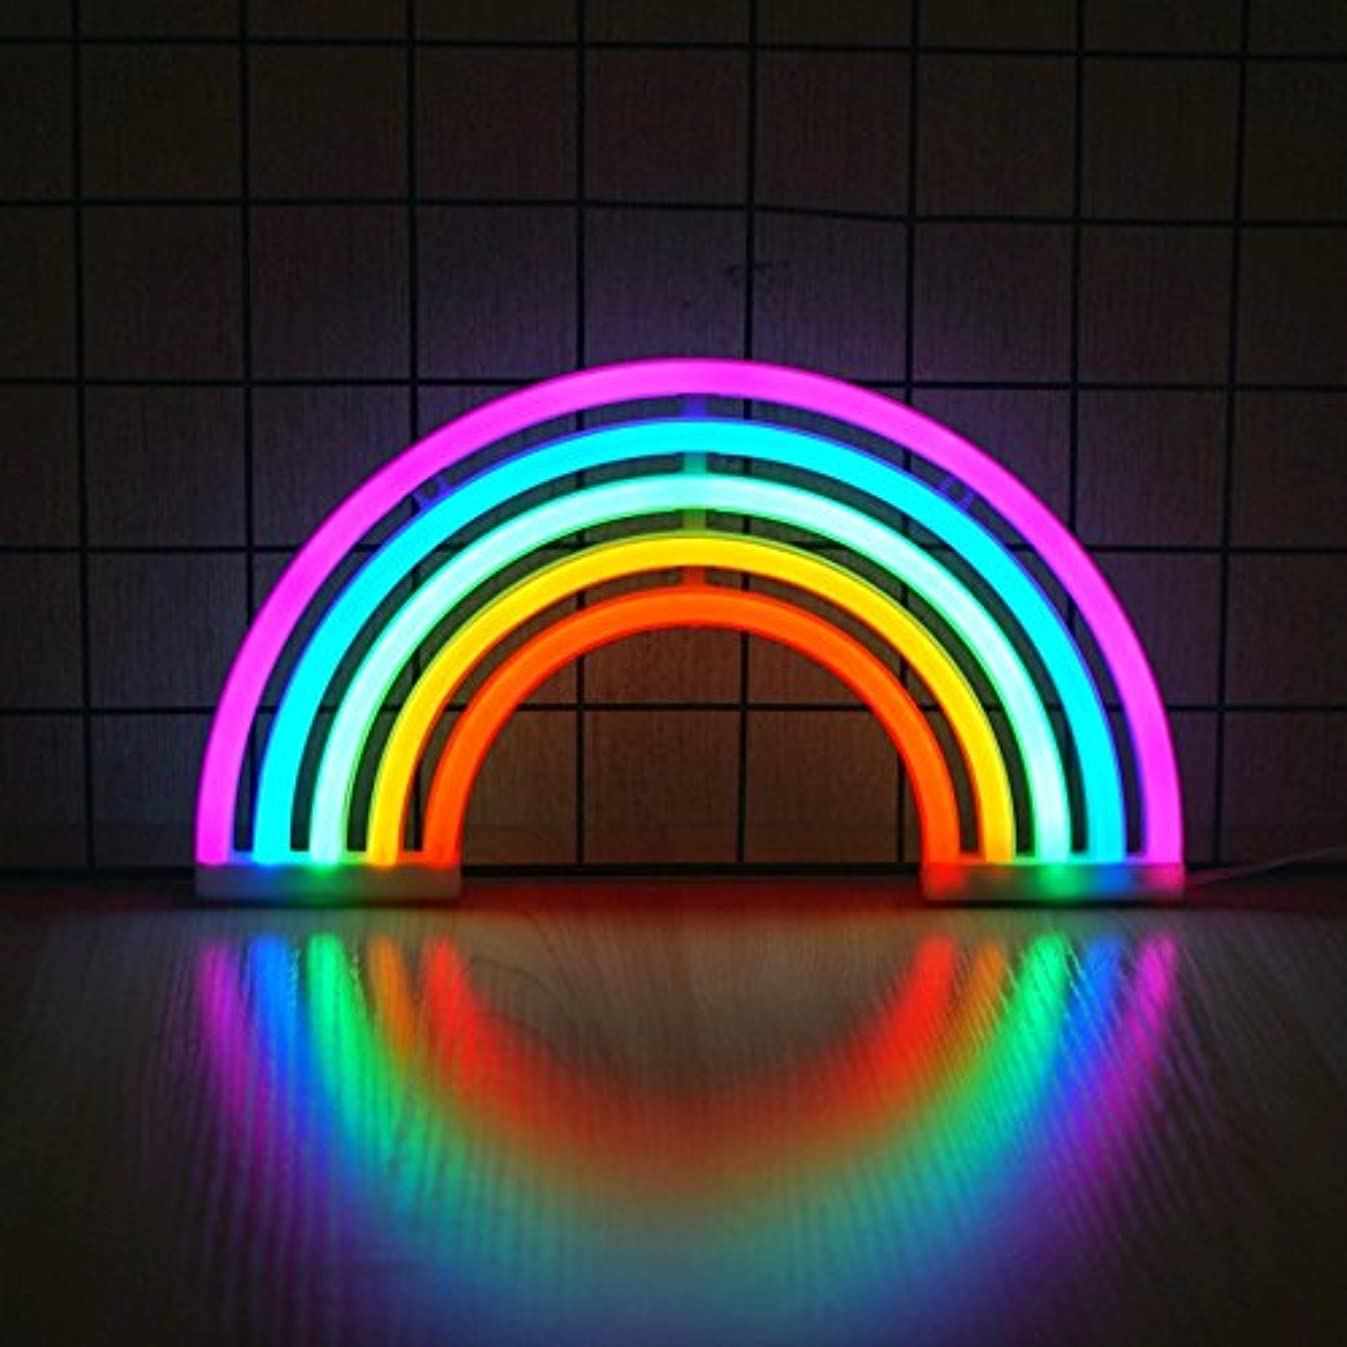 Ninight Rainbow Neon Light, Cute Colorful Neon Rainbow Sign, Battery or USB Powered Night Light as Wall Decor for Kids Room, Living Room, Festive Party